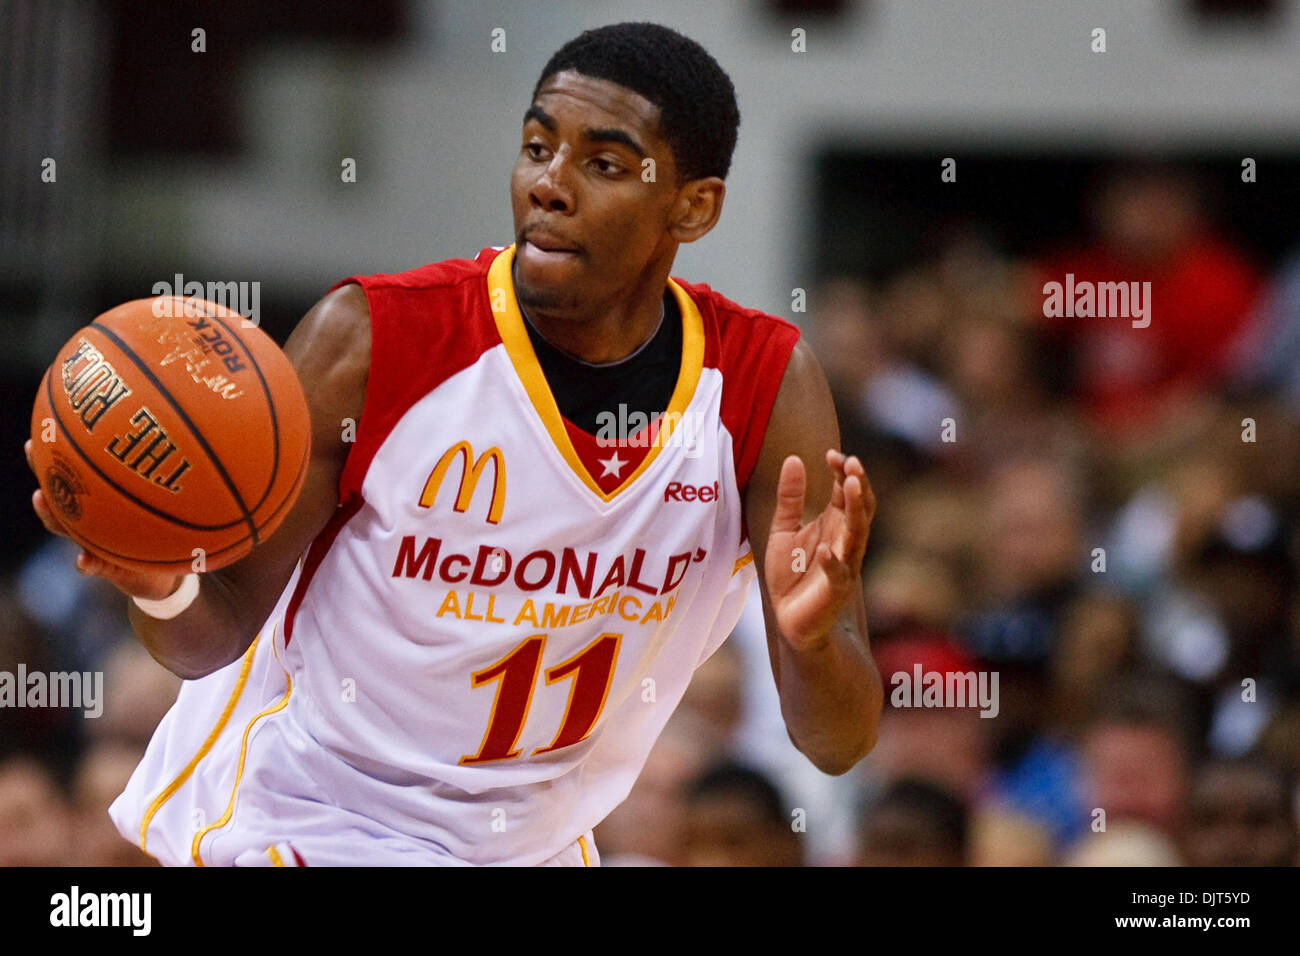 d5a80a92120 Kyrie Irving Stock Photos   Kyrie Irving Stock Images - Alamy